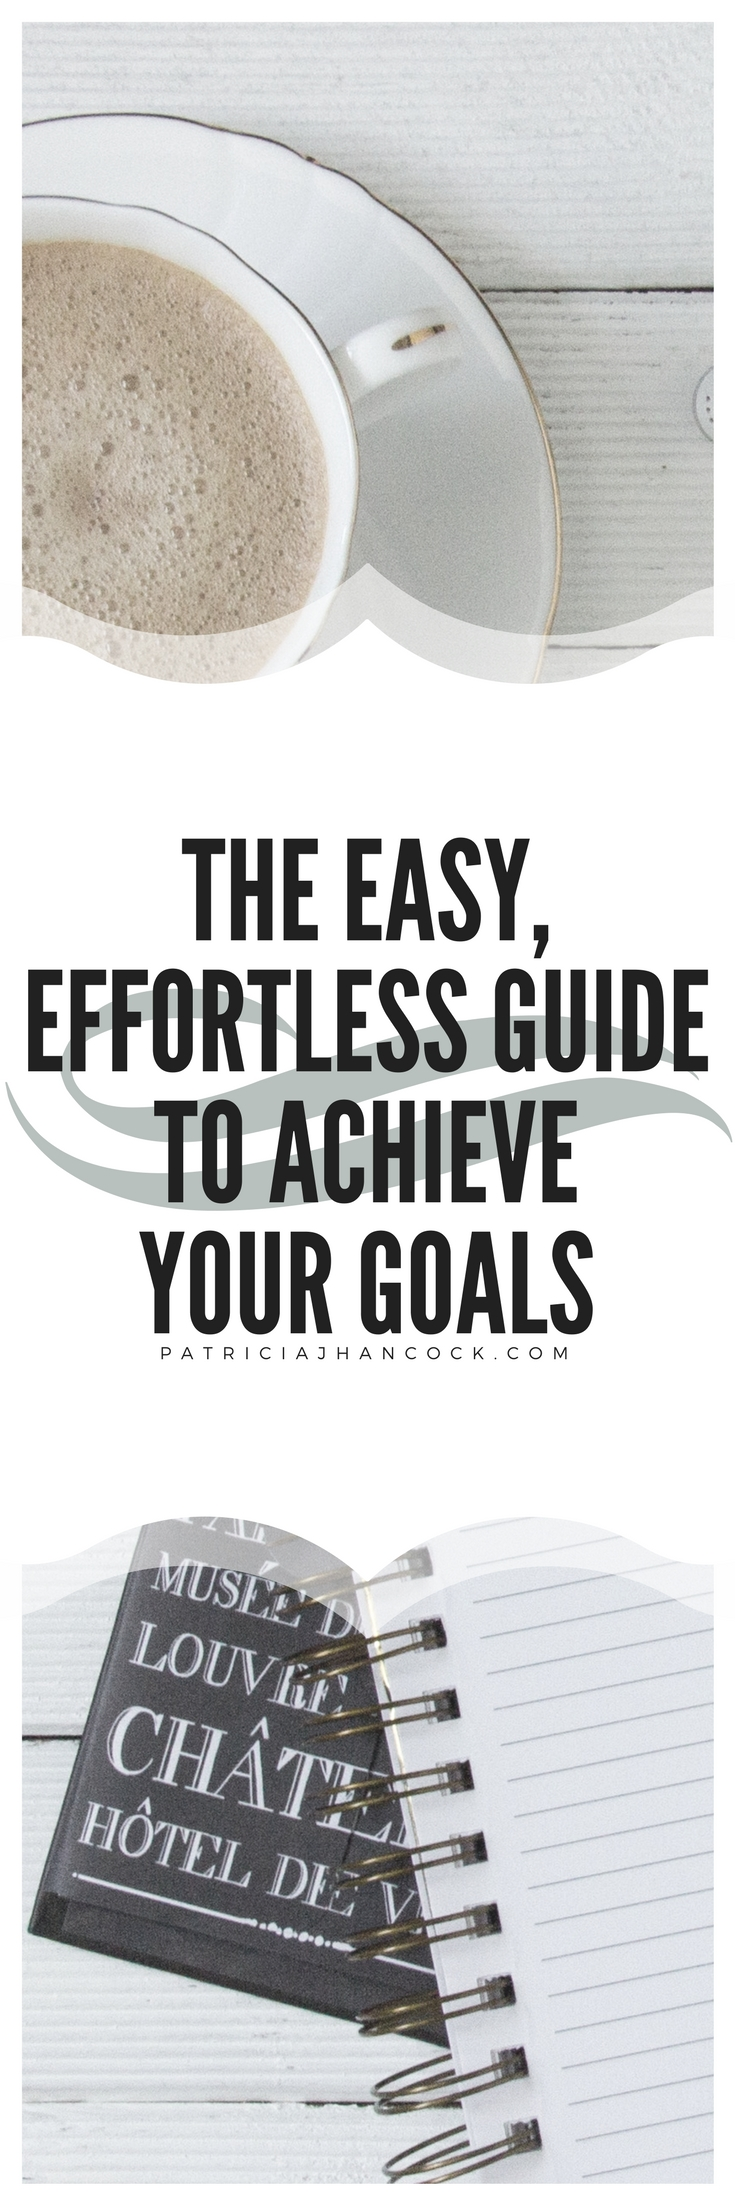 An easy guide on action steps to take today to achieve your goals, no matter how big or how small! This guide will give you the motivation and tips to get through the toughest times when you're not seeing the results from your efforts. No goal stands a chance against this guide!